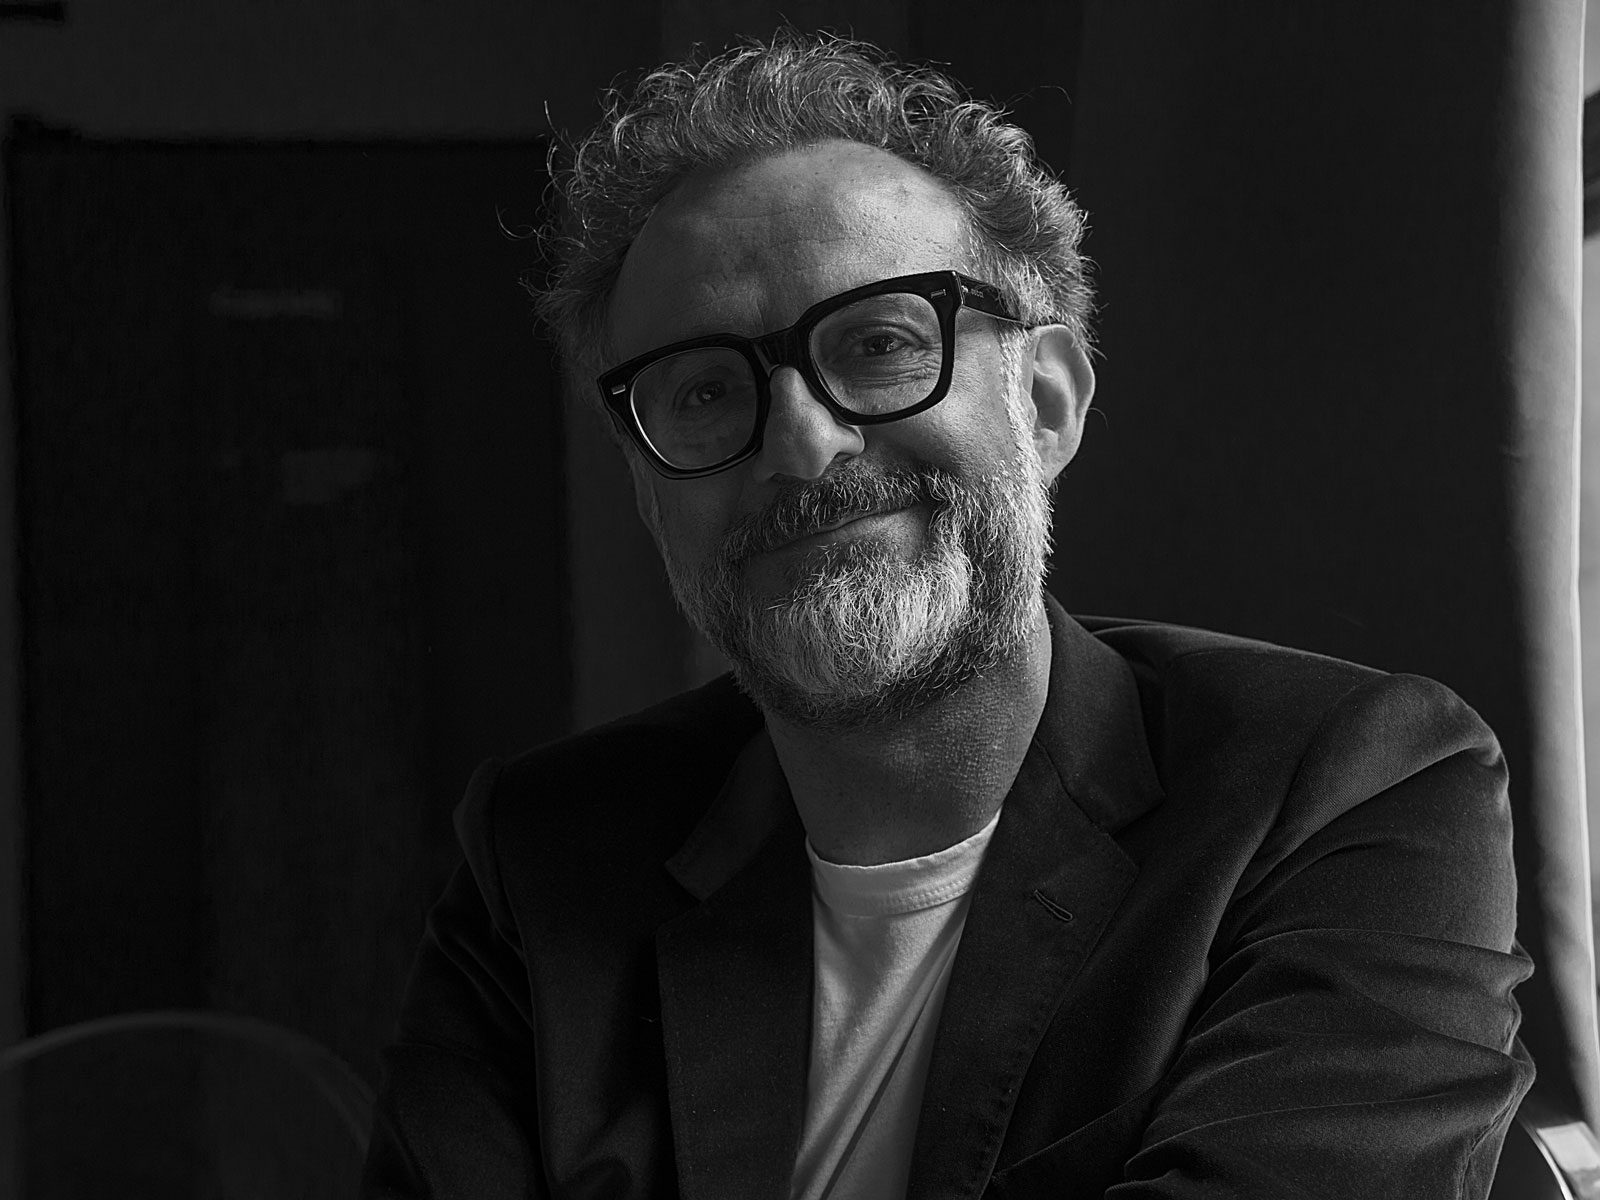 Massimo Bottura Will Curate Sotheby's Contemporary Art Auction This Fall